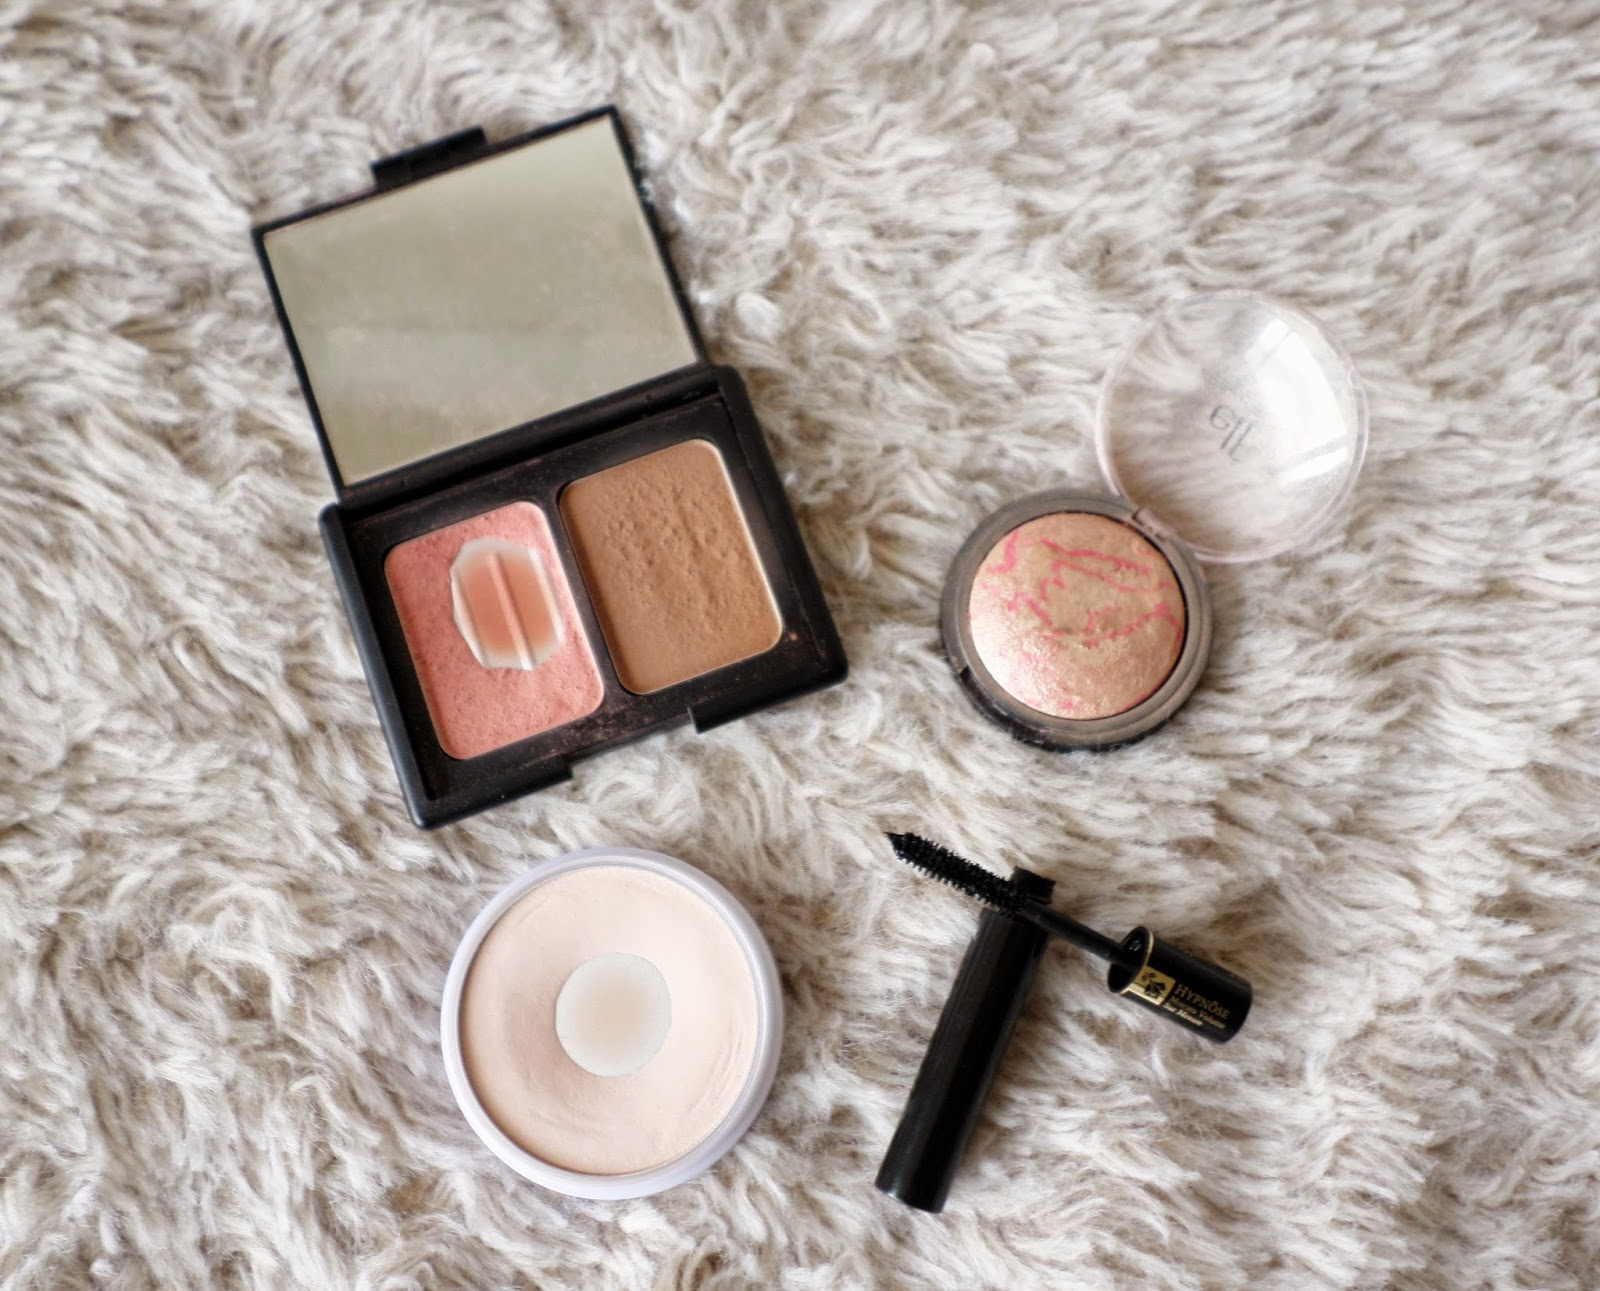 August Beauty Favourites Featuring Soap & Glory, Organic Surge, Natural Collection, ELF Cosmetics and L'ancome